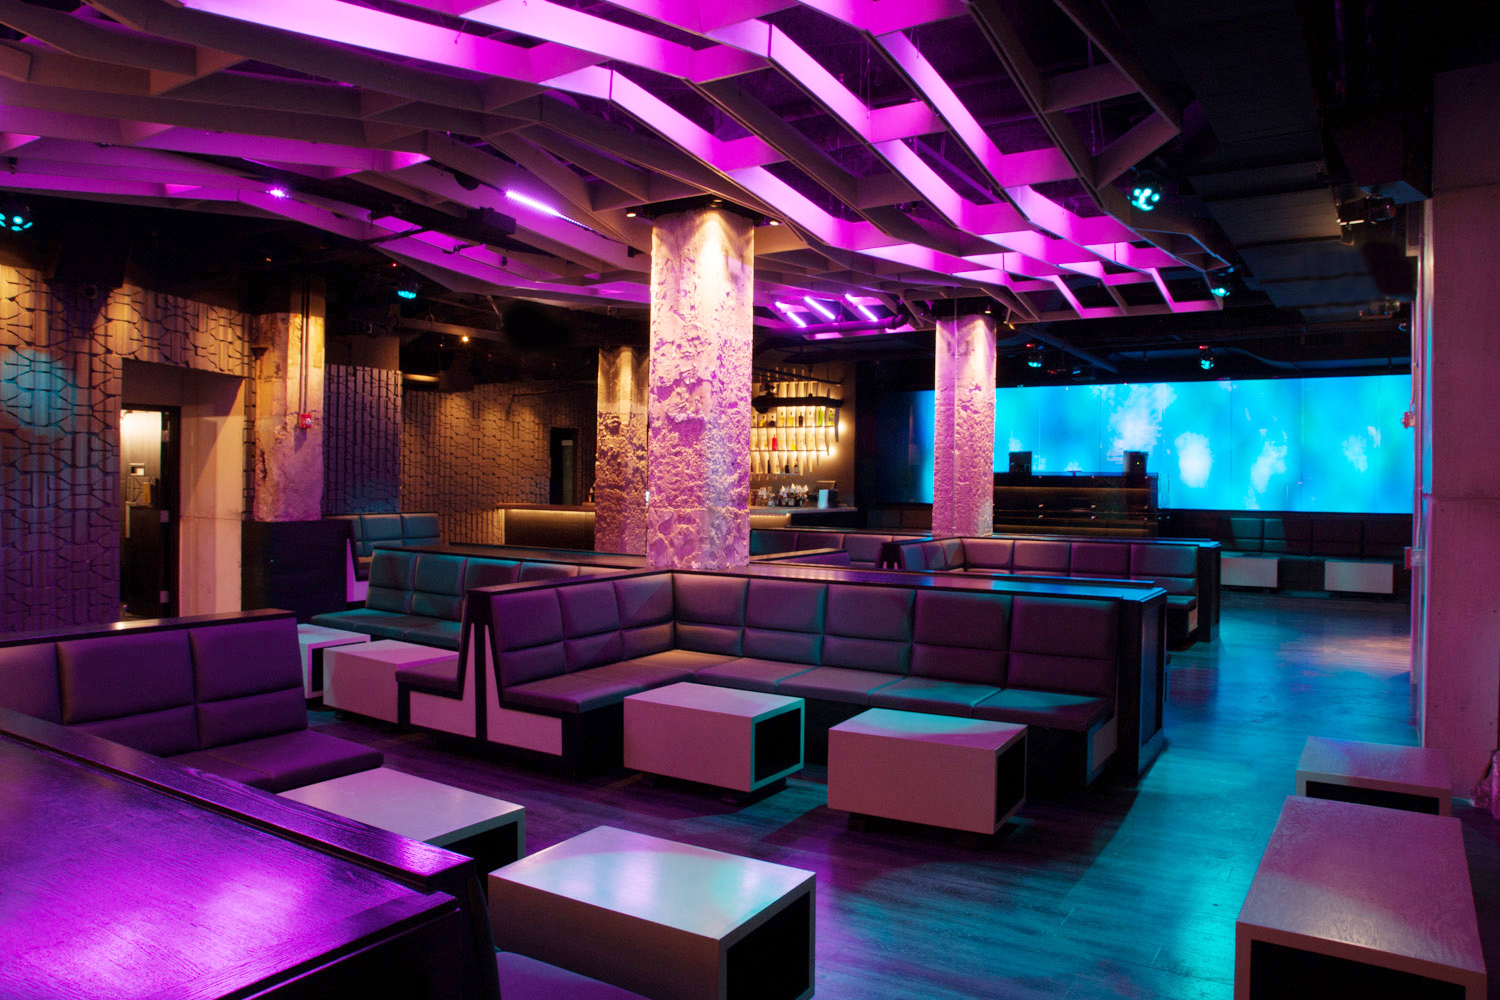 The Underground event space in Chicago, Chicagoland Area